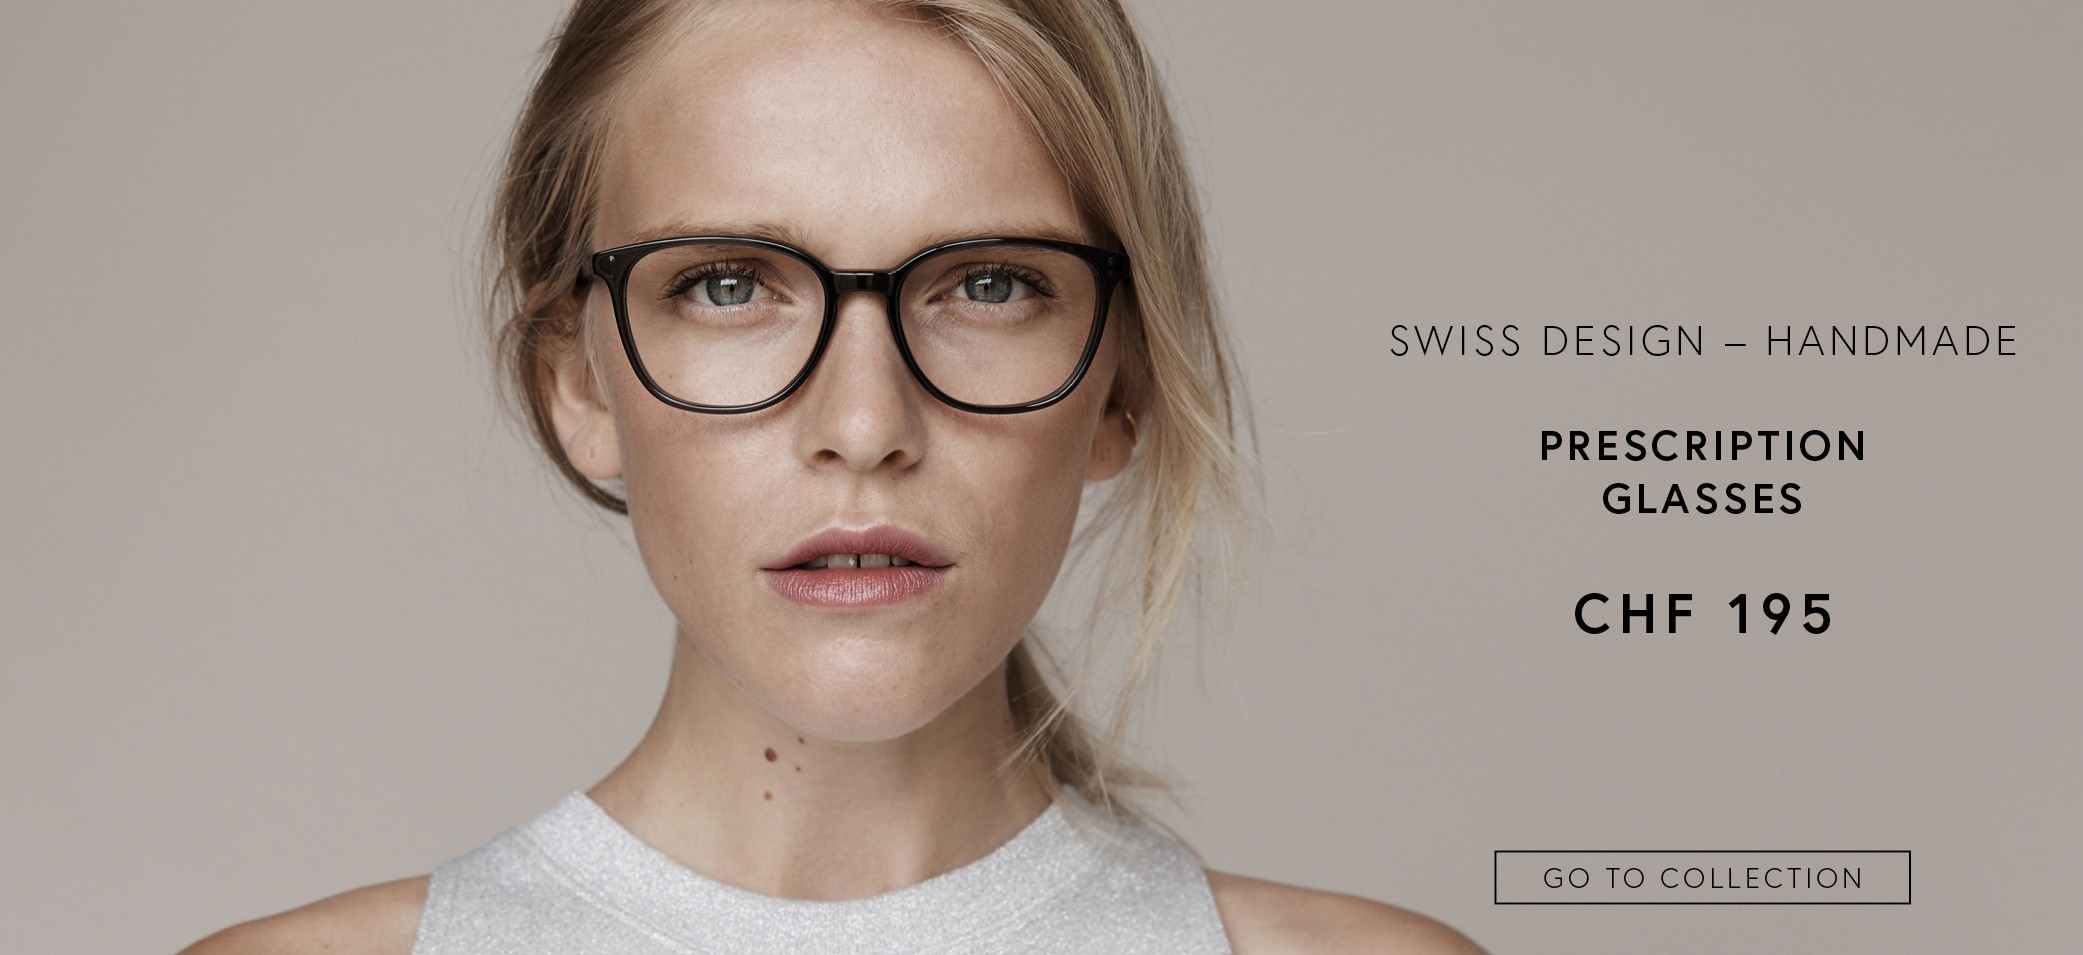 Prescription glasses CHF 195